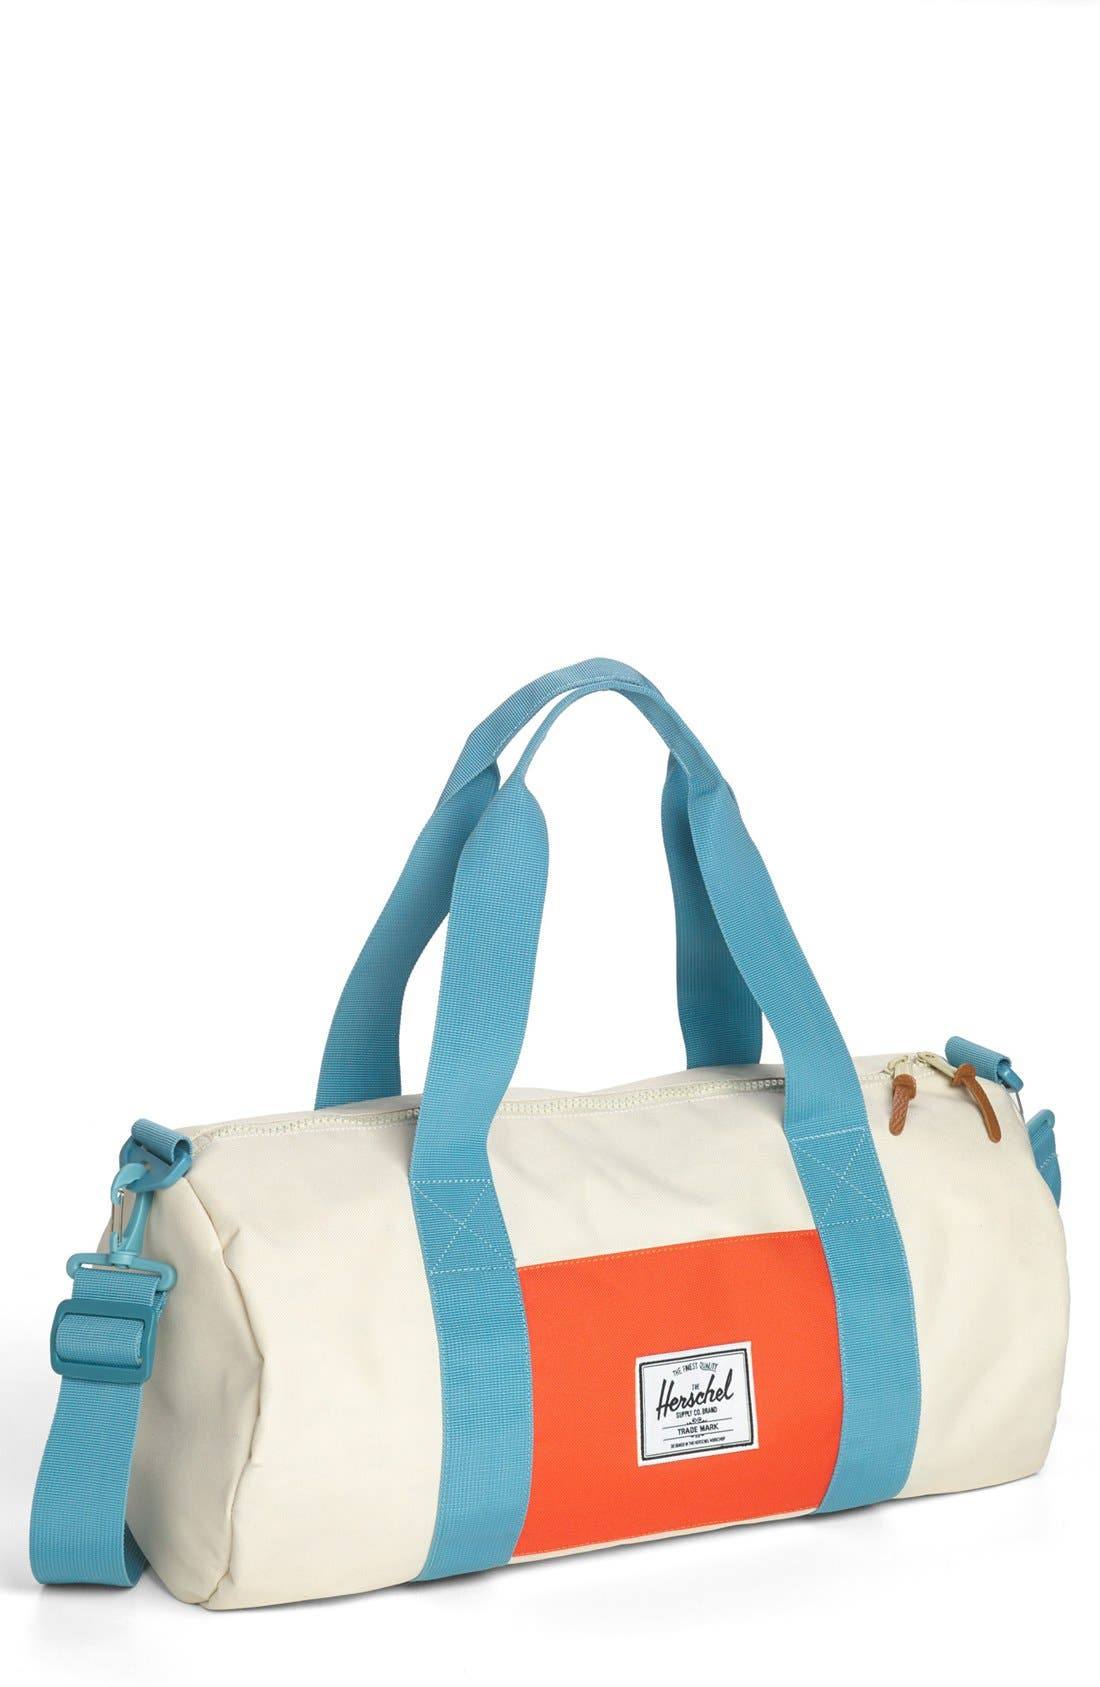 Main Image - Herschel Supply Co. 'Sutton - Rad Cars with Rad Surfboards Collection' Midsize Duffel Bag